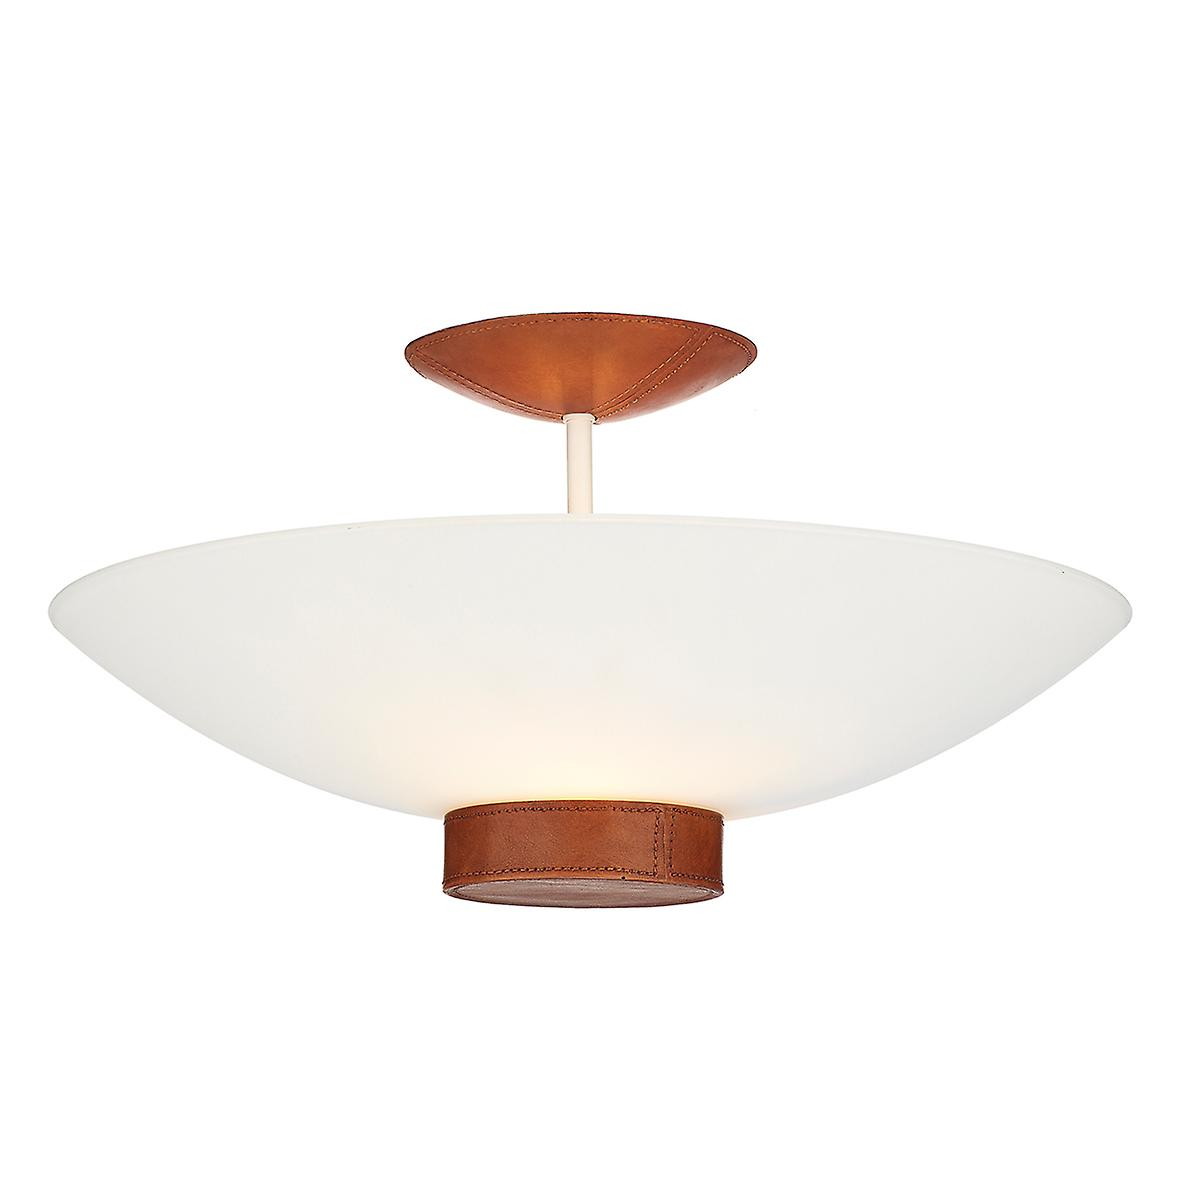 David Hunt SA133 Saddler Disc Shaped Semi Flush Pendant With A Leather Effect